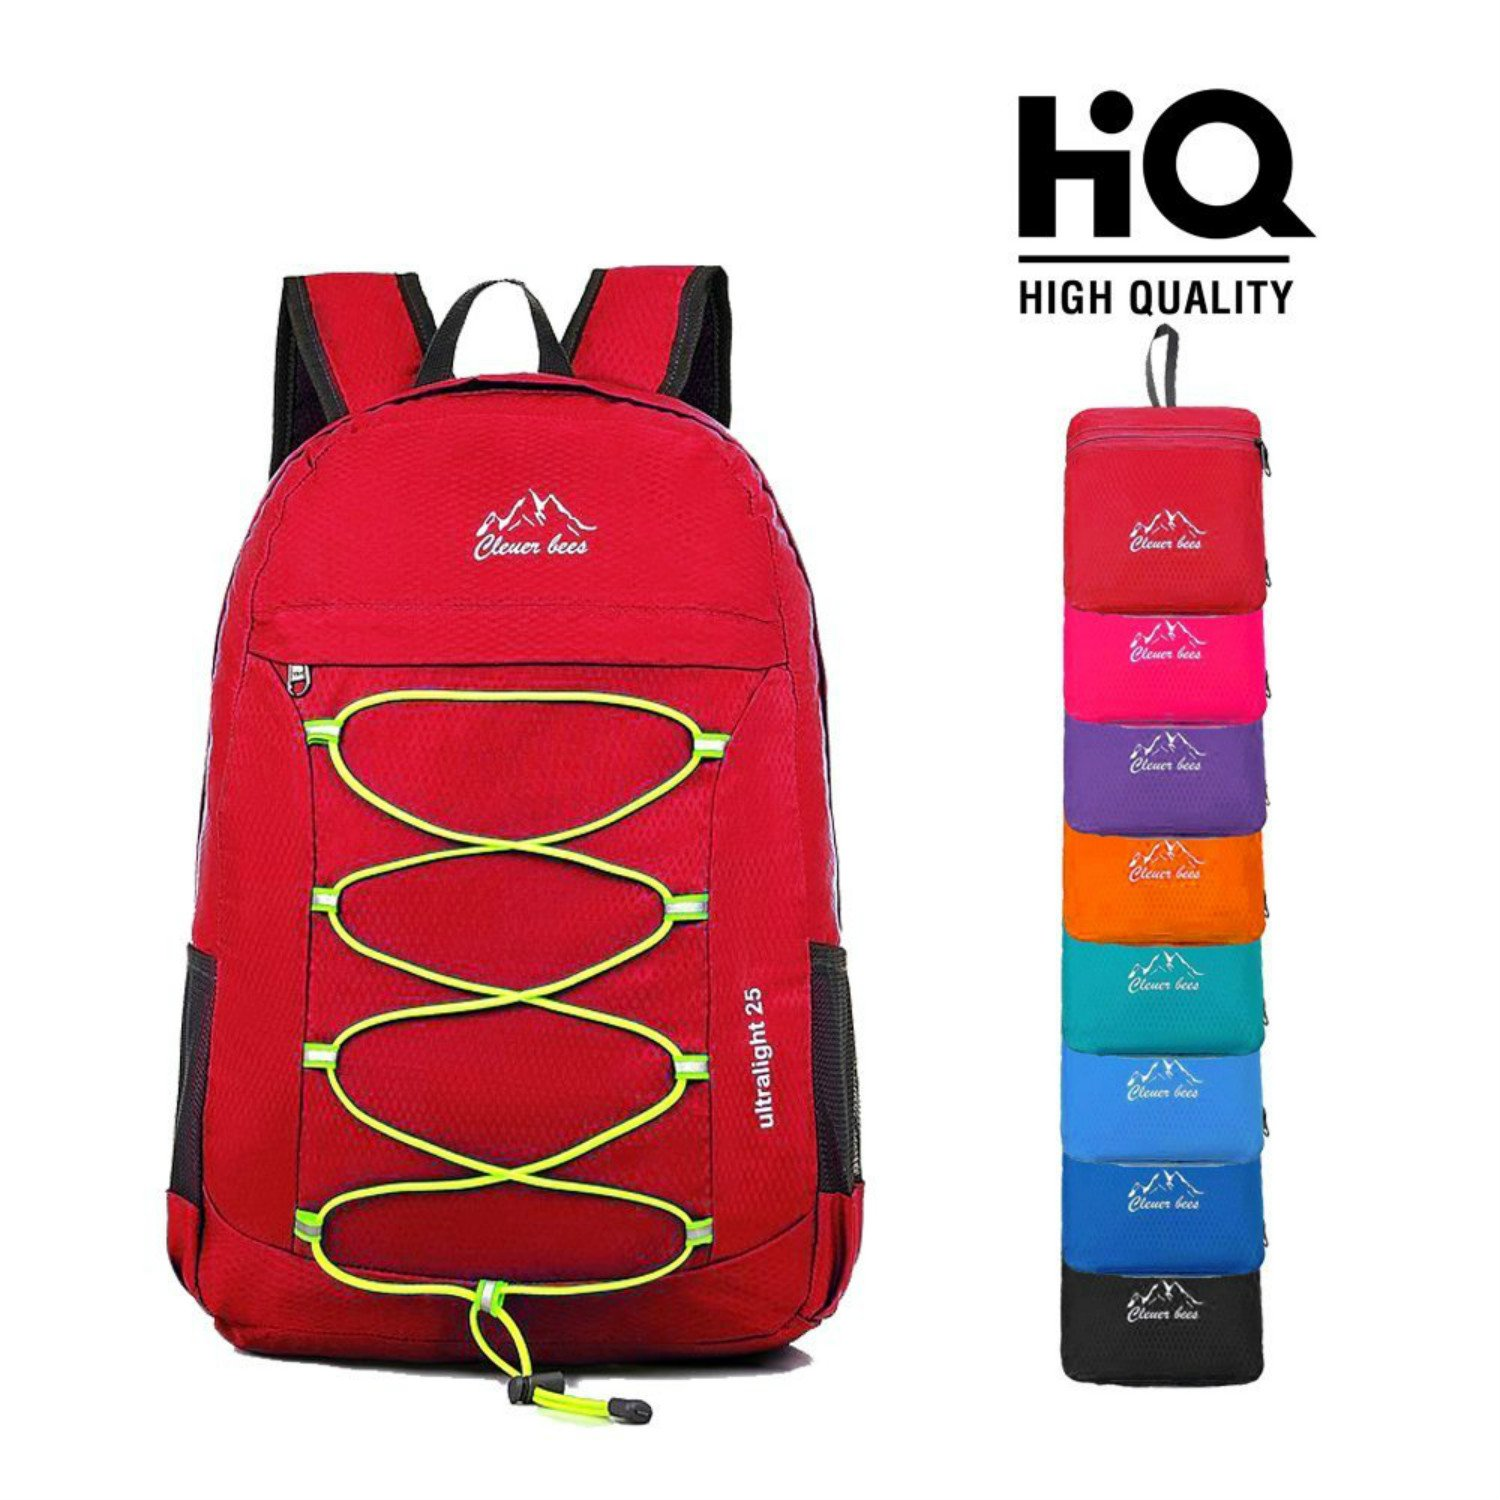 aba8b39da3f 70%OFF My case diy store 25L Packable Backpack Lightweight Handy Foldable  Daypack Outdoor Water